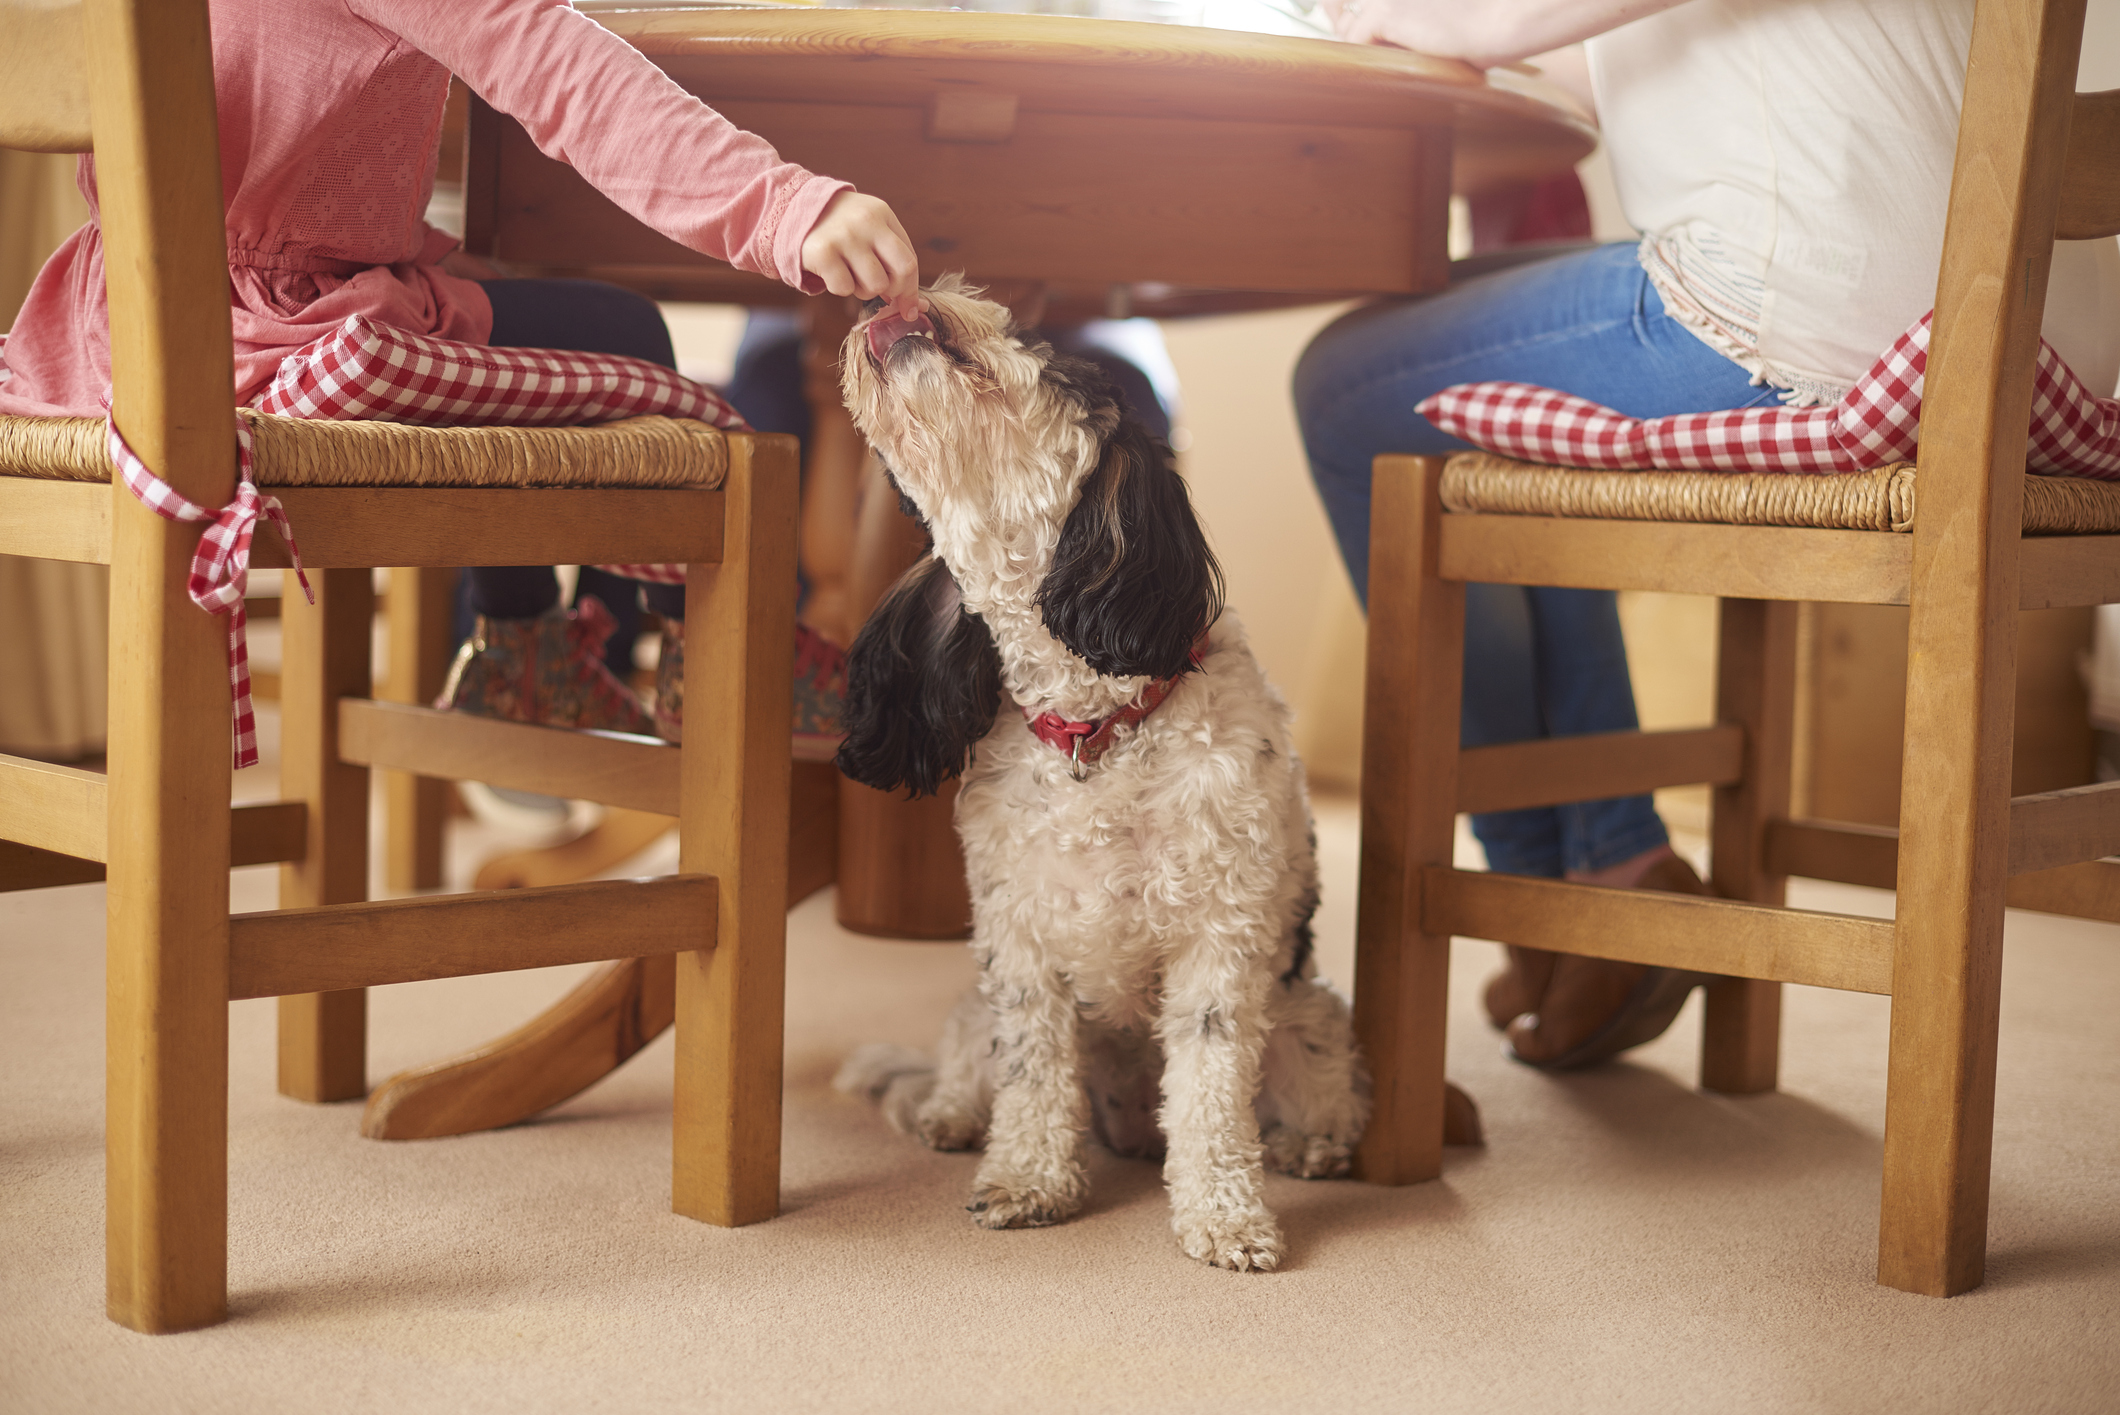 Dog eating table scraps